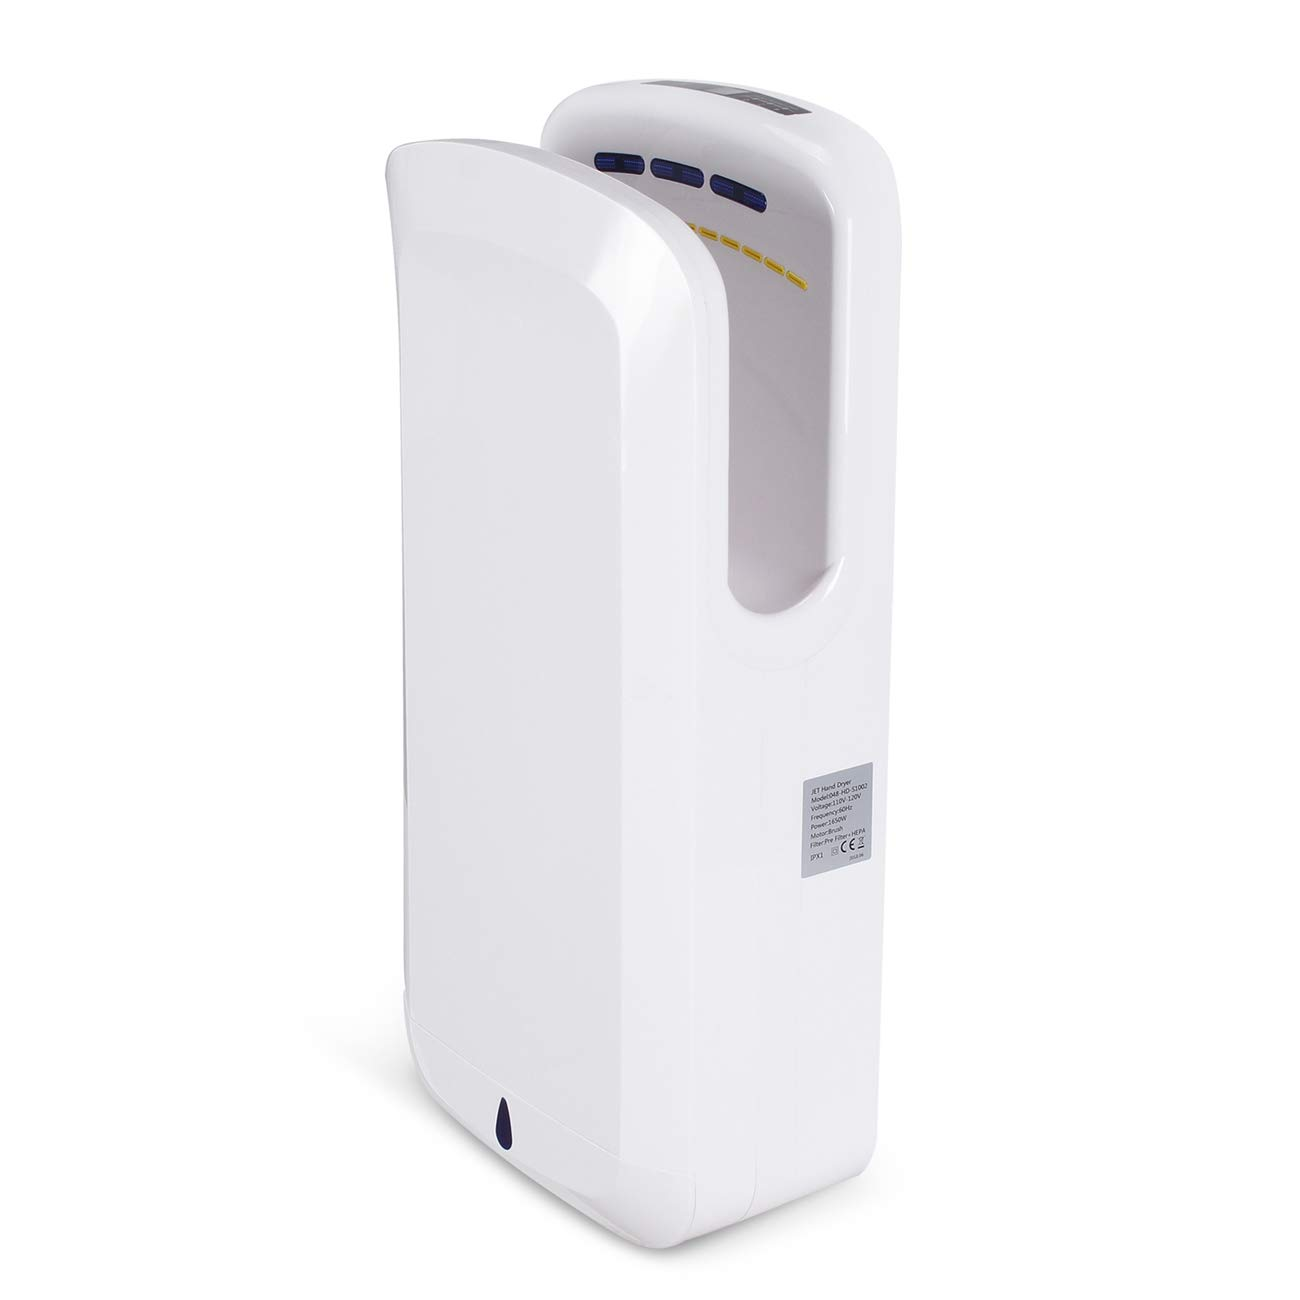 ARKSEN Electric Hand Dryer 100m/s, Commercial Bathroom and Kitchen, Brushless Motor 1650W, ABS Material, White